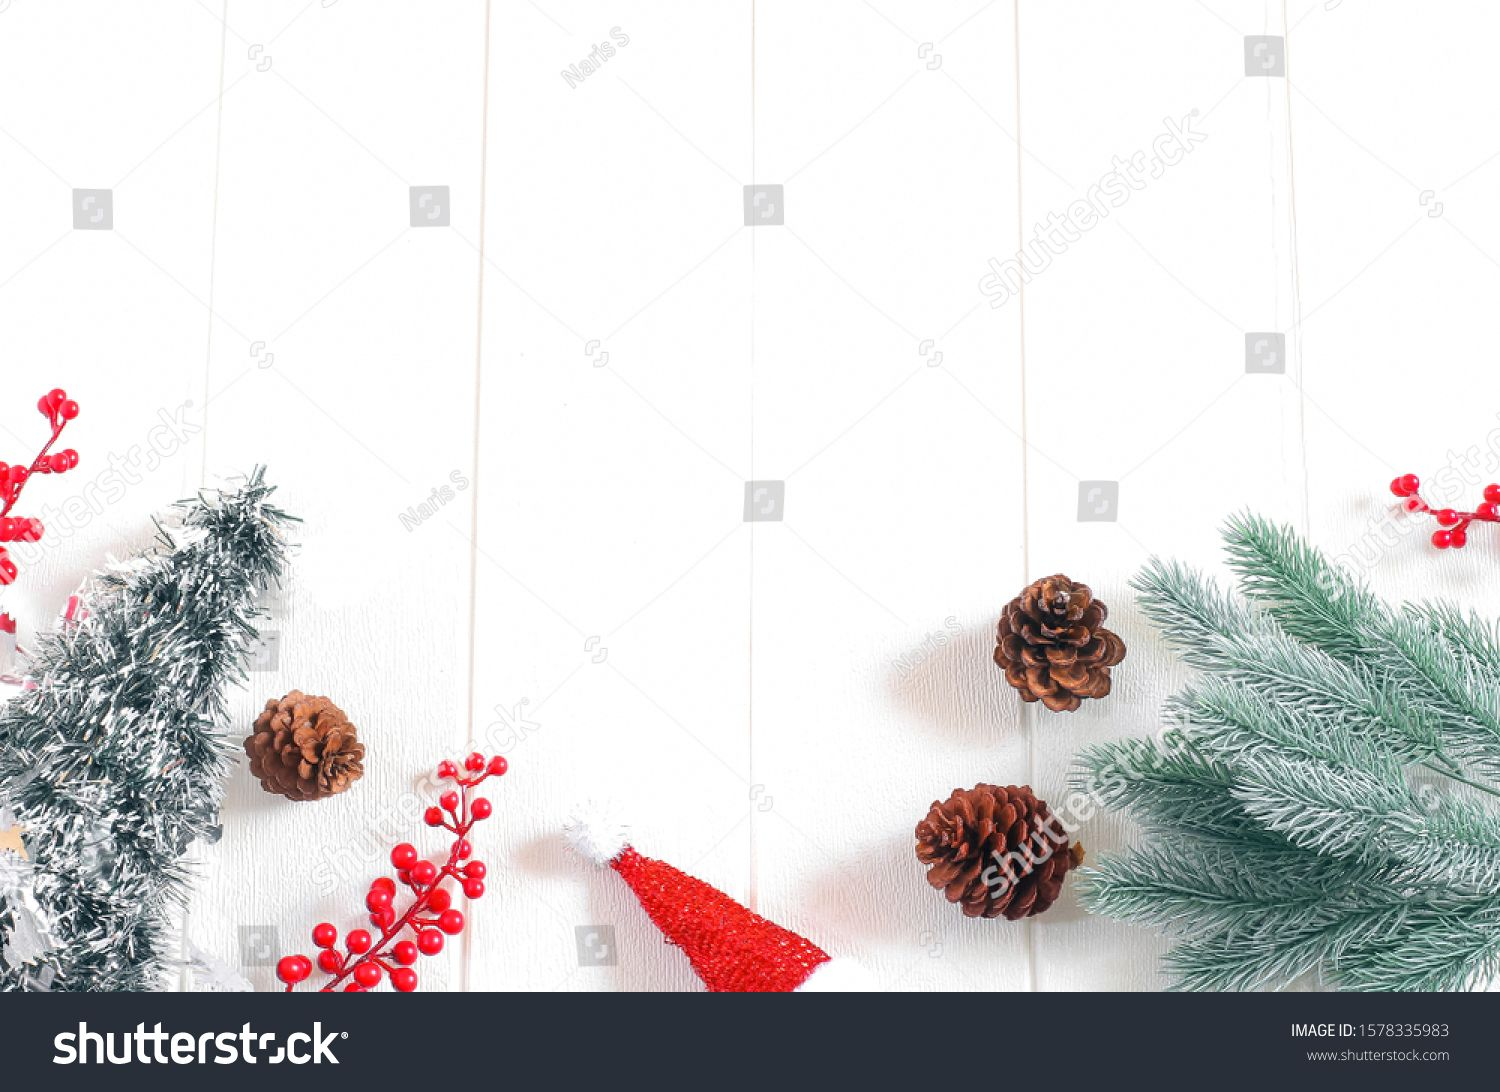 Christmas Frame Composition Fir Tree Branches Pinecone Santa Claus Hat Christmas Tree On White Wooden Background T Christmas Frames Tree Branches Fir Tree